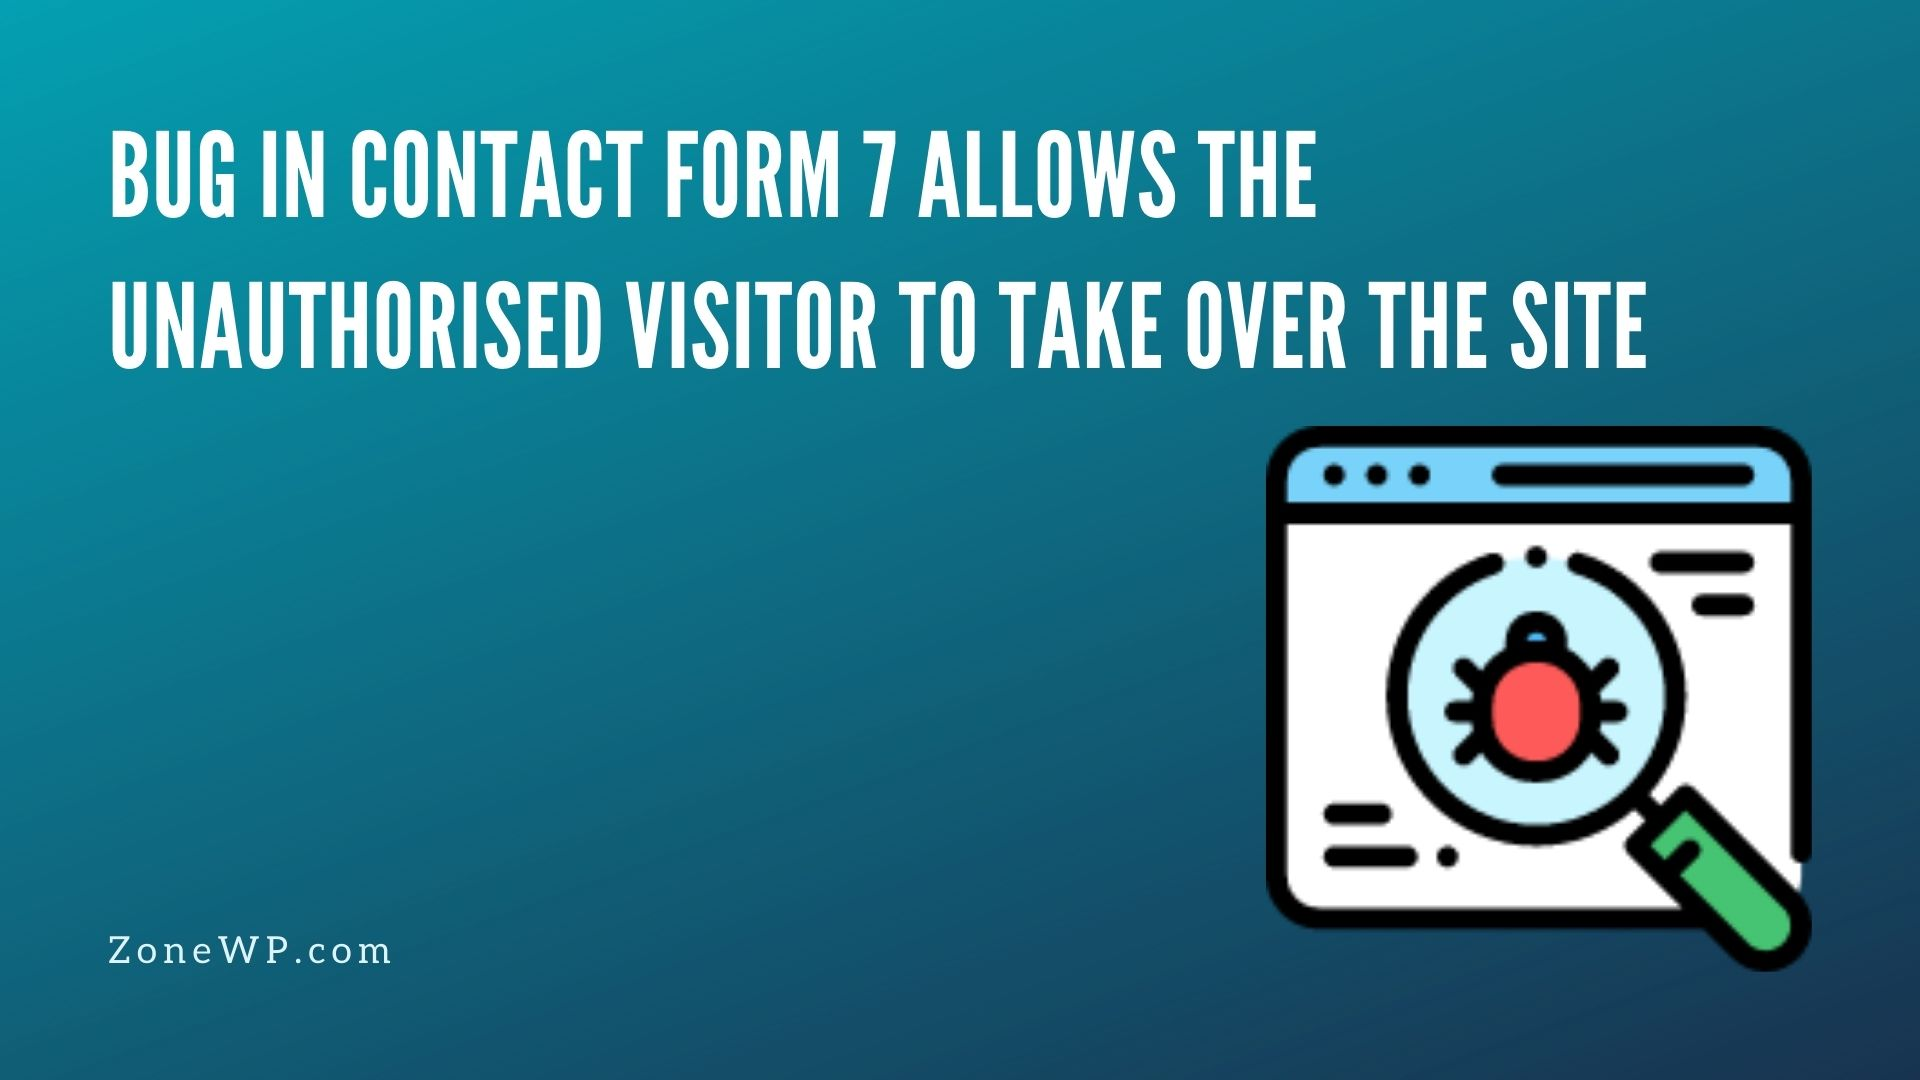 Bug in Contact Form 7 allows the unauthorised visitor to take over the site